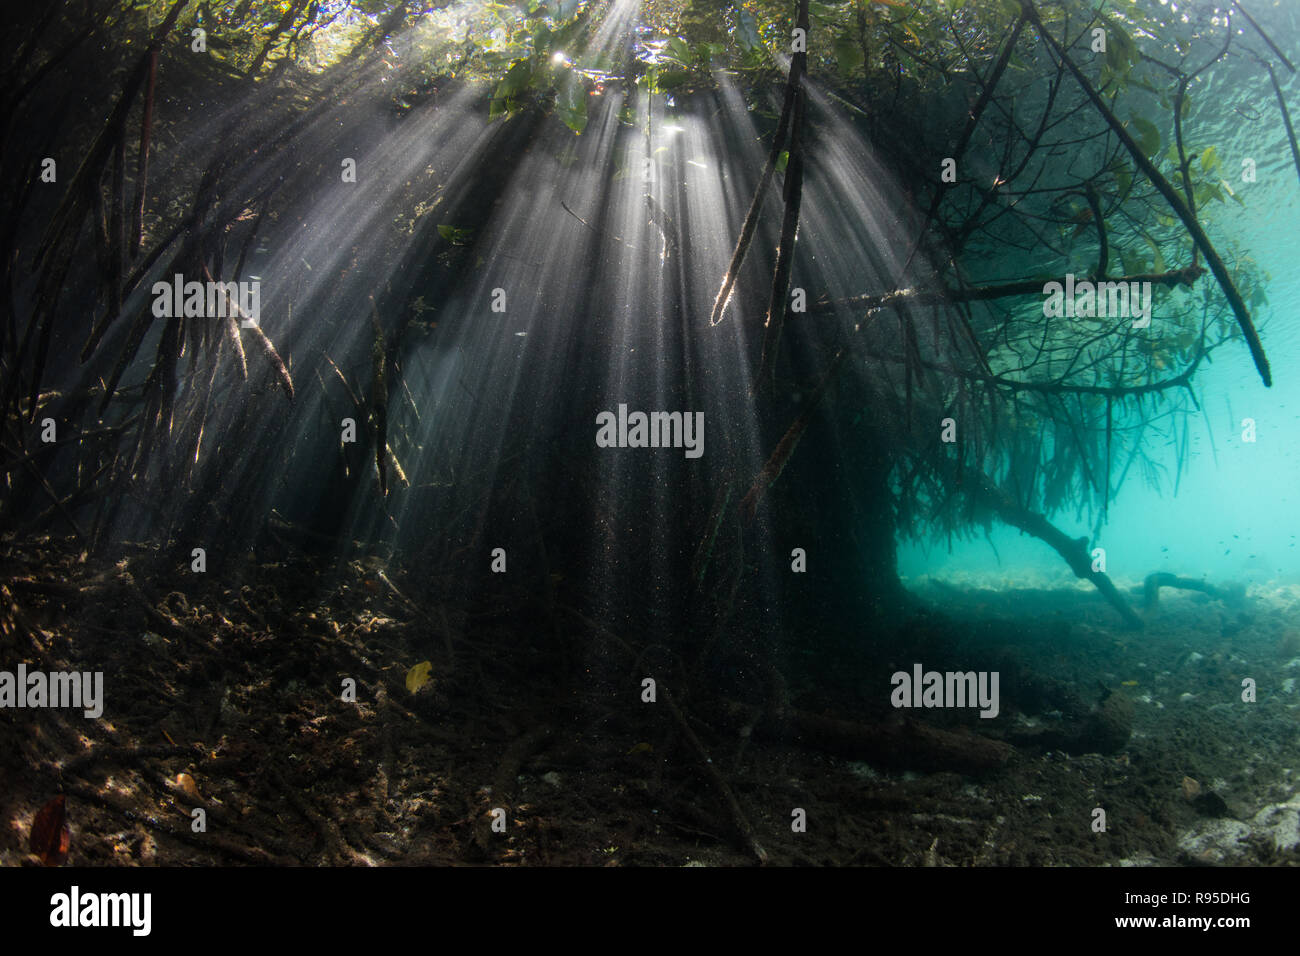 Sunlight shines into the shadows of a blue water mangrove forest in Raja Ampat, Indonesia. - Stock Image